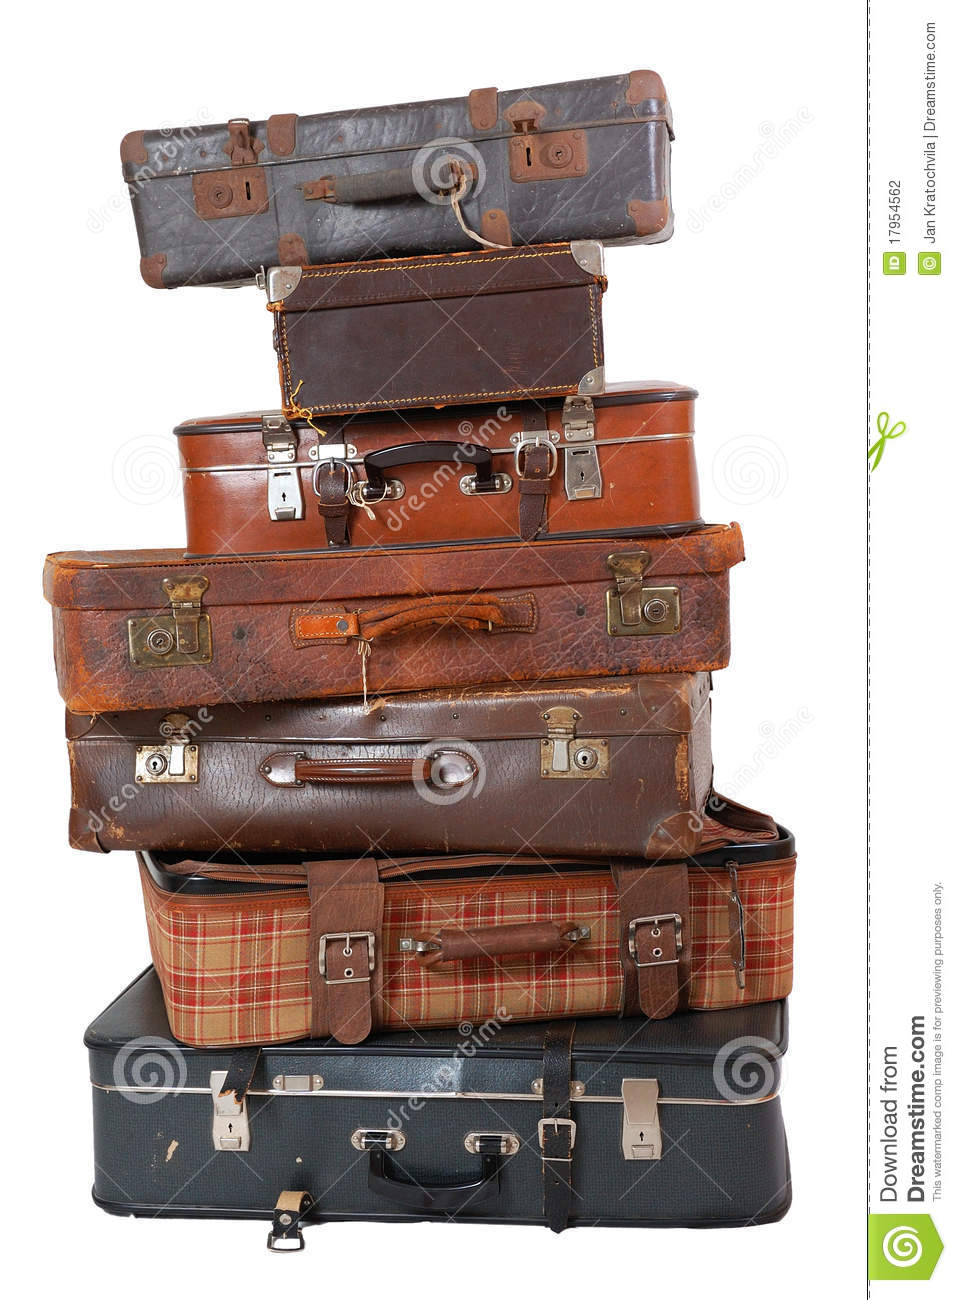 Pile Of Vintage Luggage Stock Photography - Image: 17954562